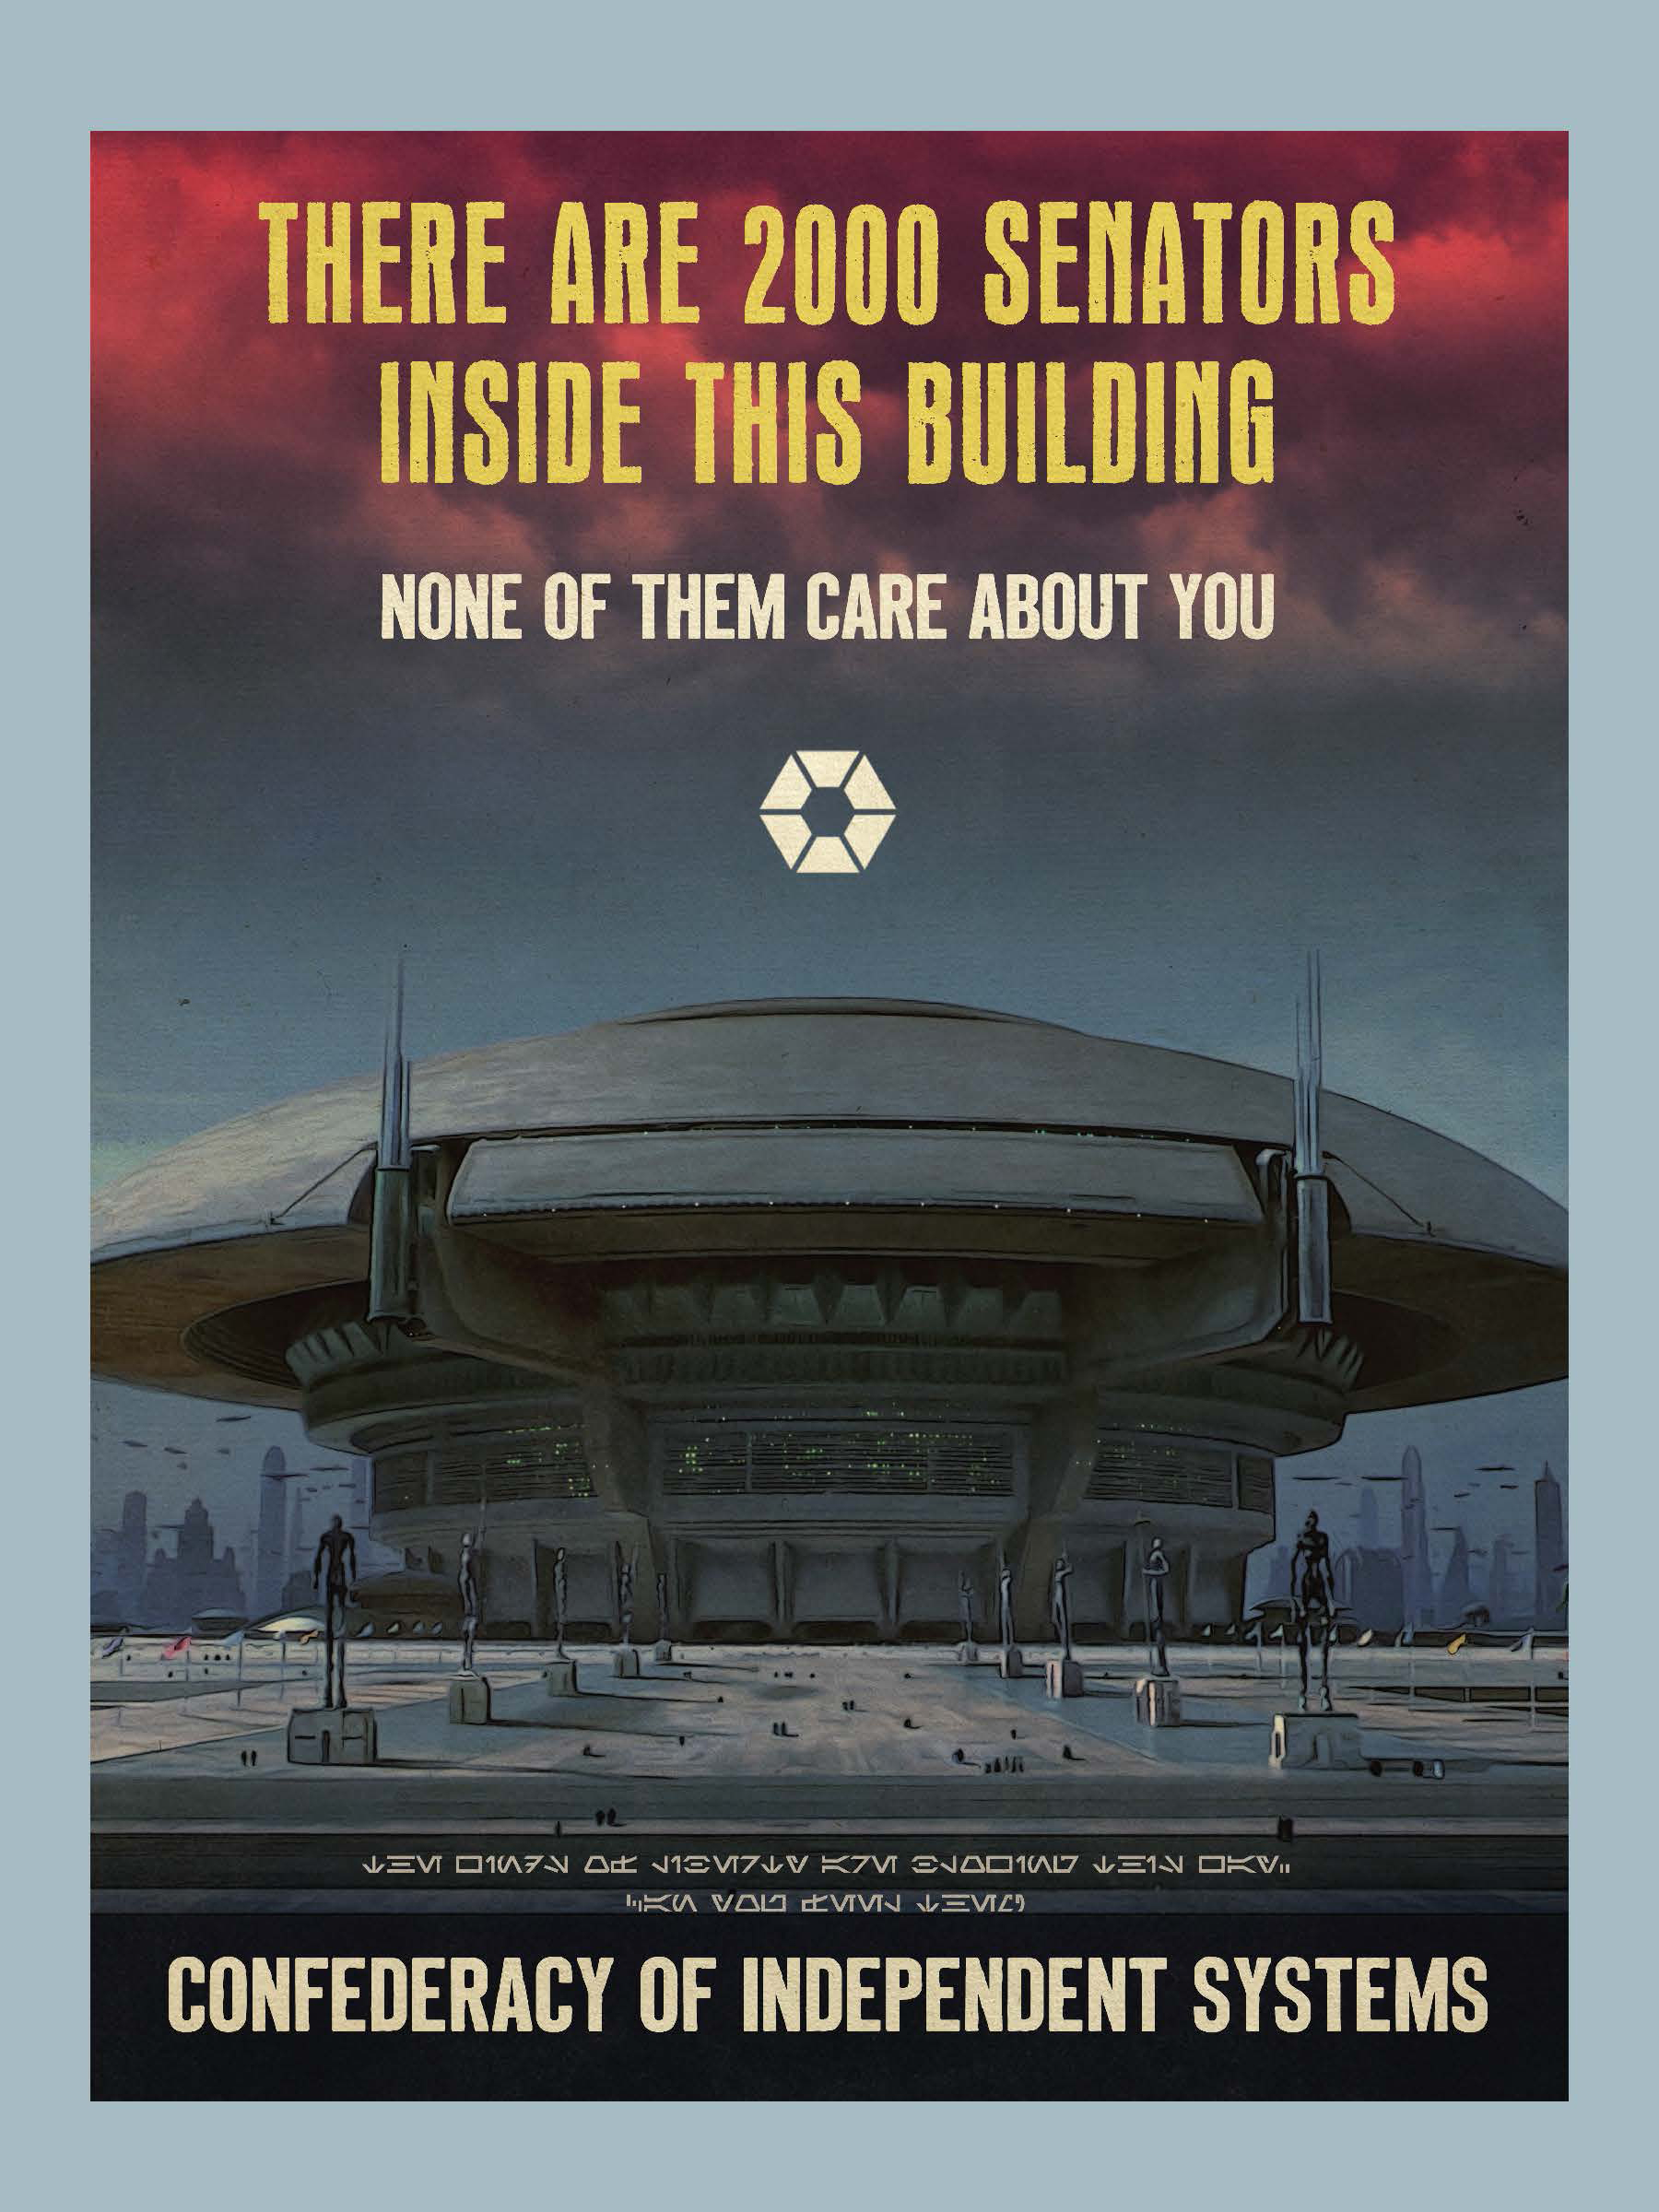 In Pablo Hidalgo's Star Wars Propaganda: A History of Persuasive Art in the Galaxy, he illustrates the rise in apathy from outer and mid rim planets who believed the Republic was corrupt and undemocratic.